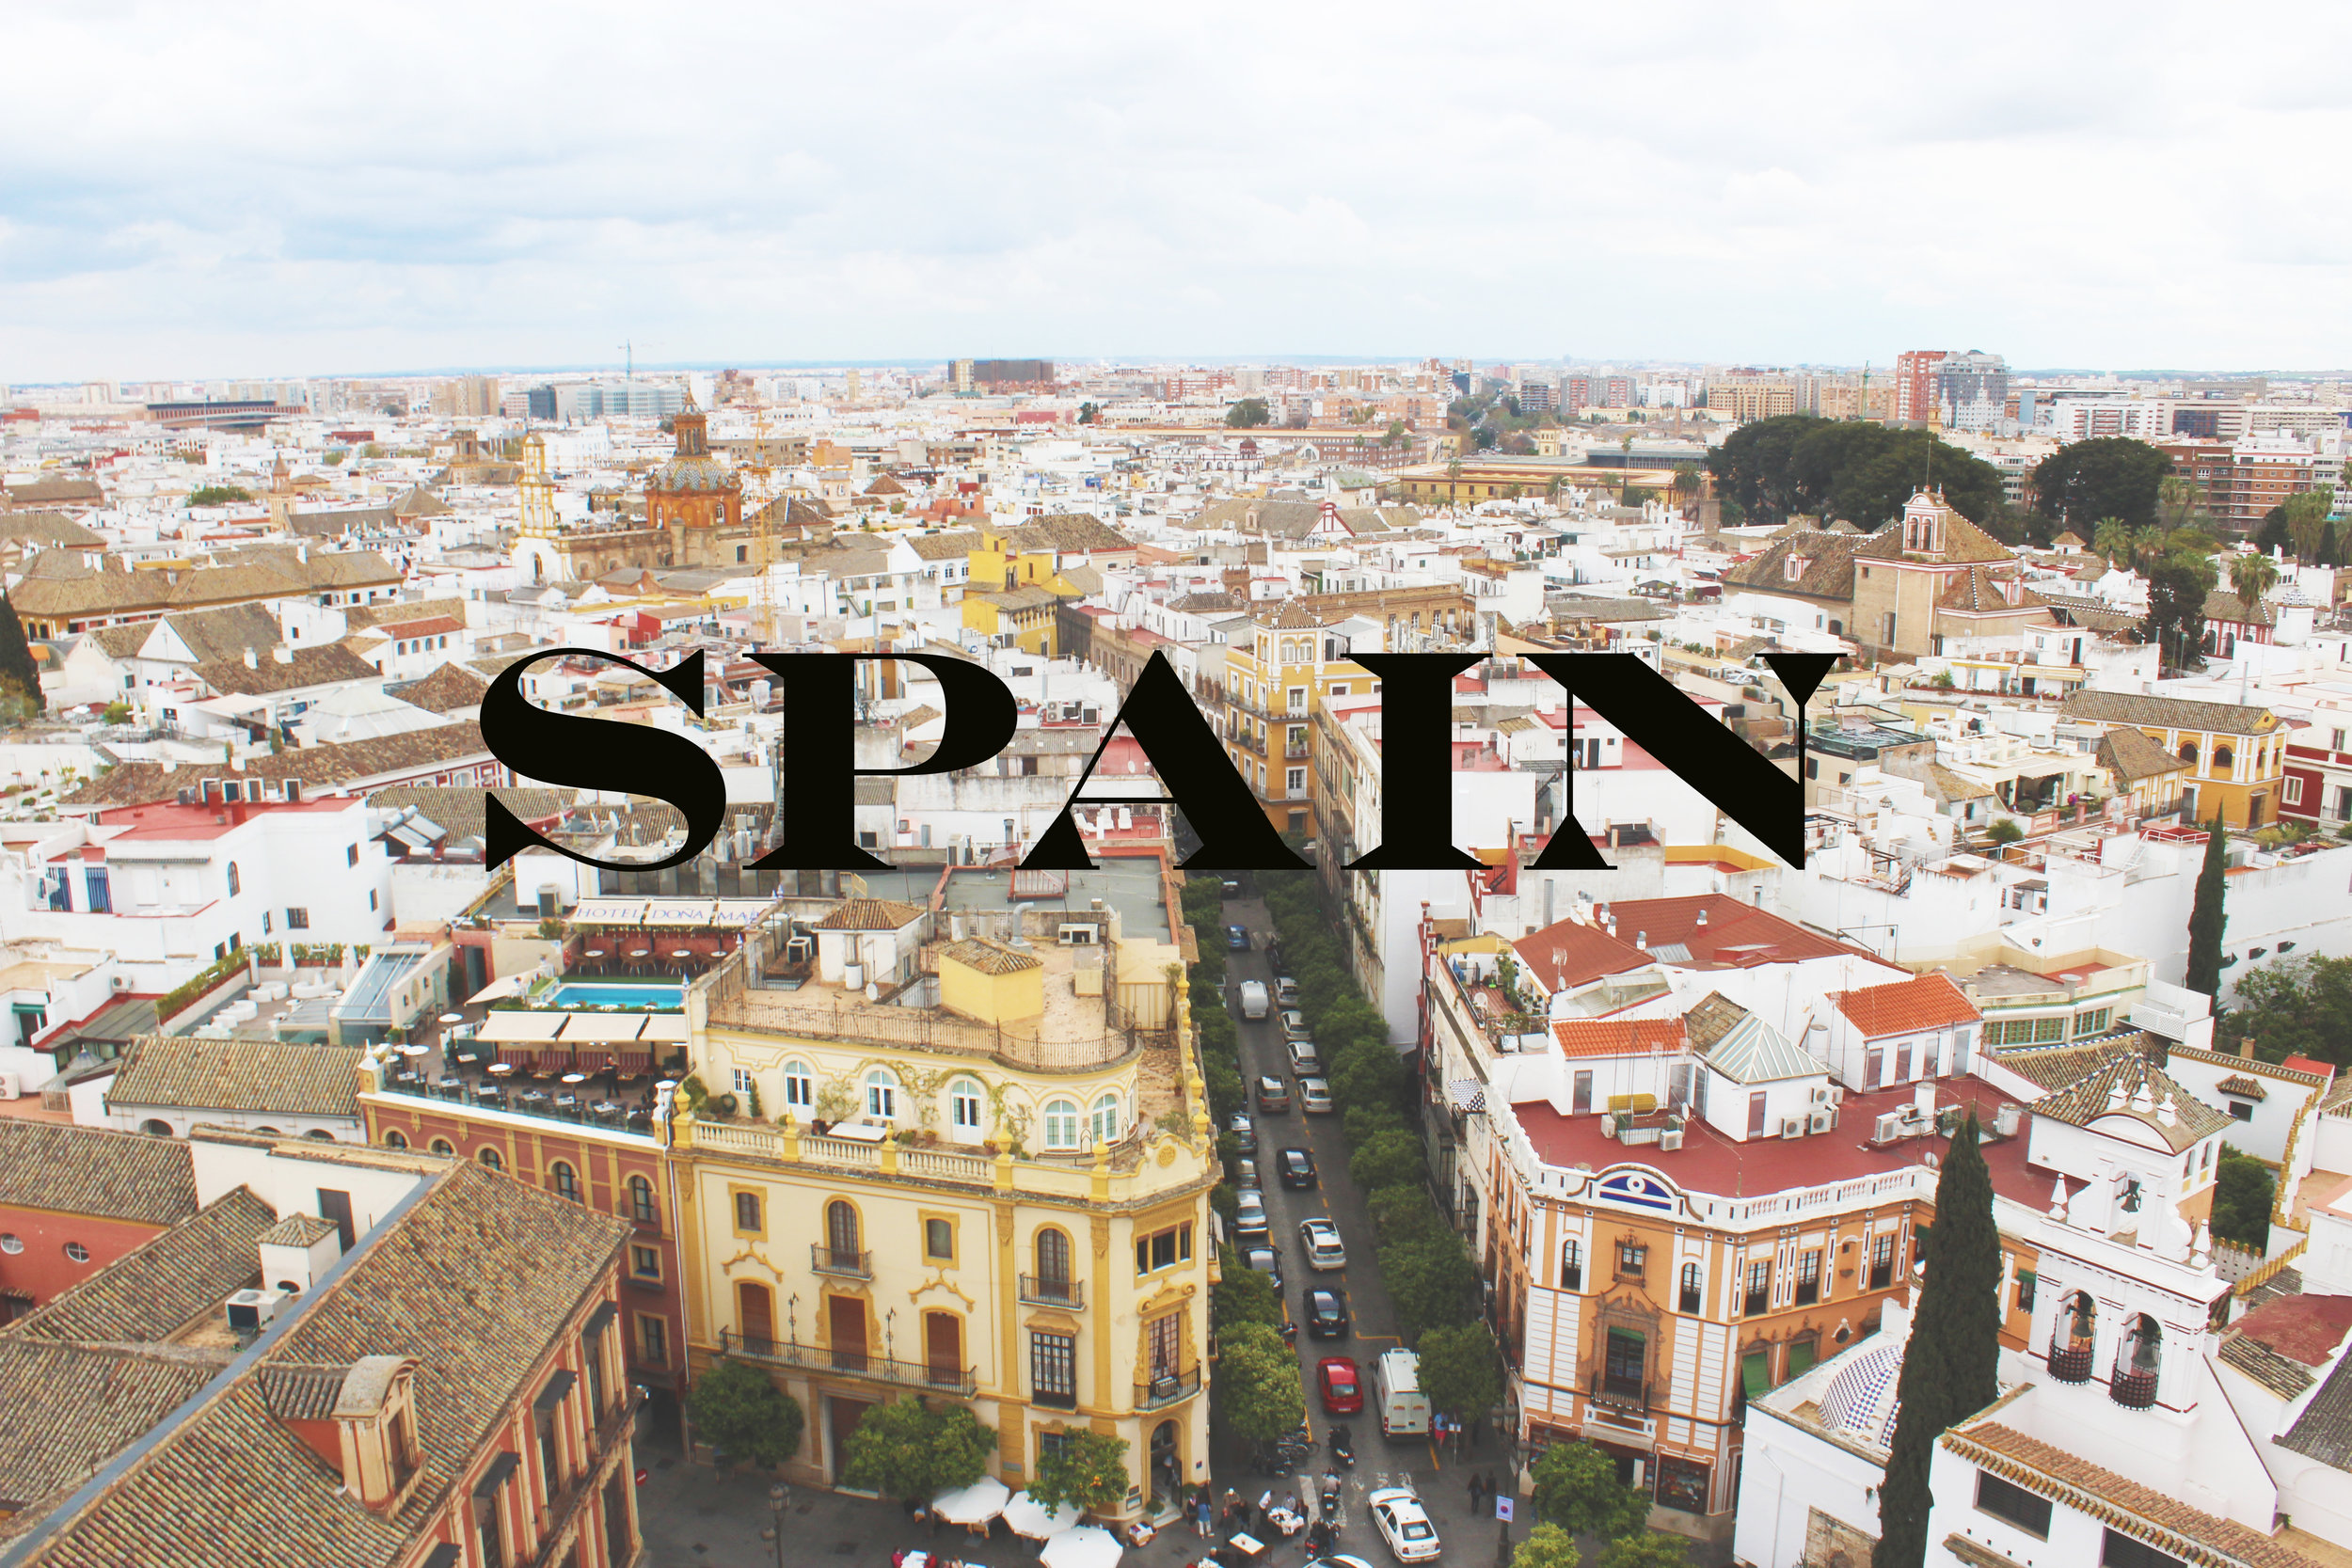 Being Spain's Student    Leave Alone-a Barcelona    Conquering El Chorro    The Rain in Spain DOES NOT Stay Mainly on the Plain    Seville: Bebimos la Sangria y Nos Perdemos